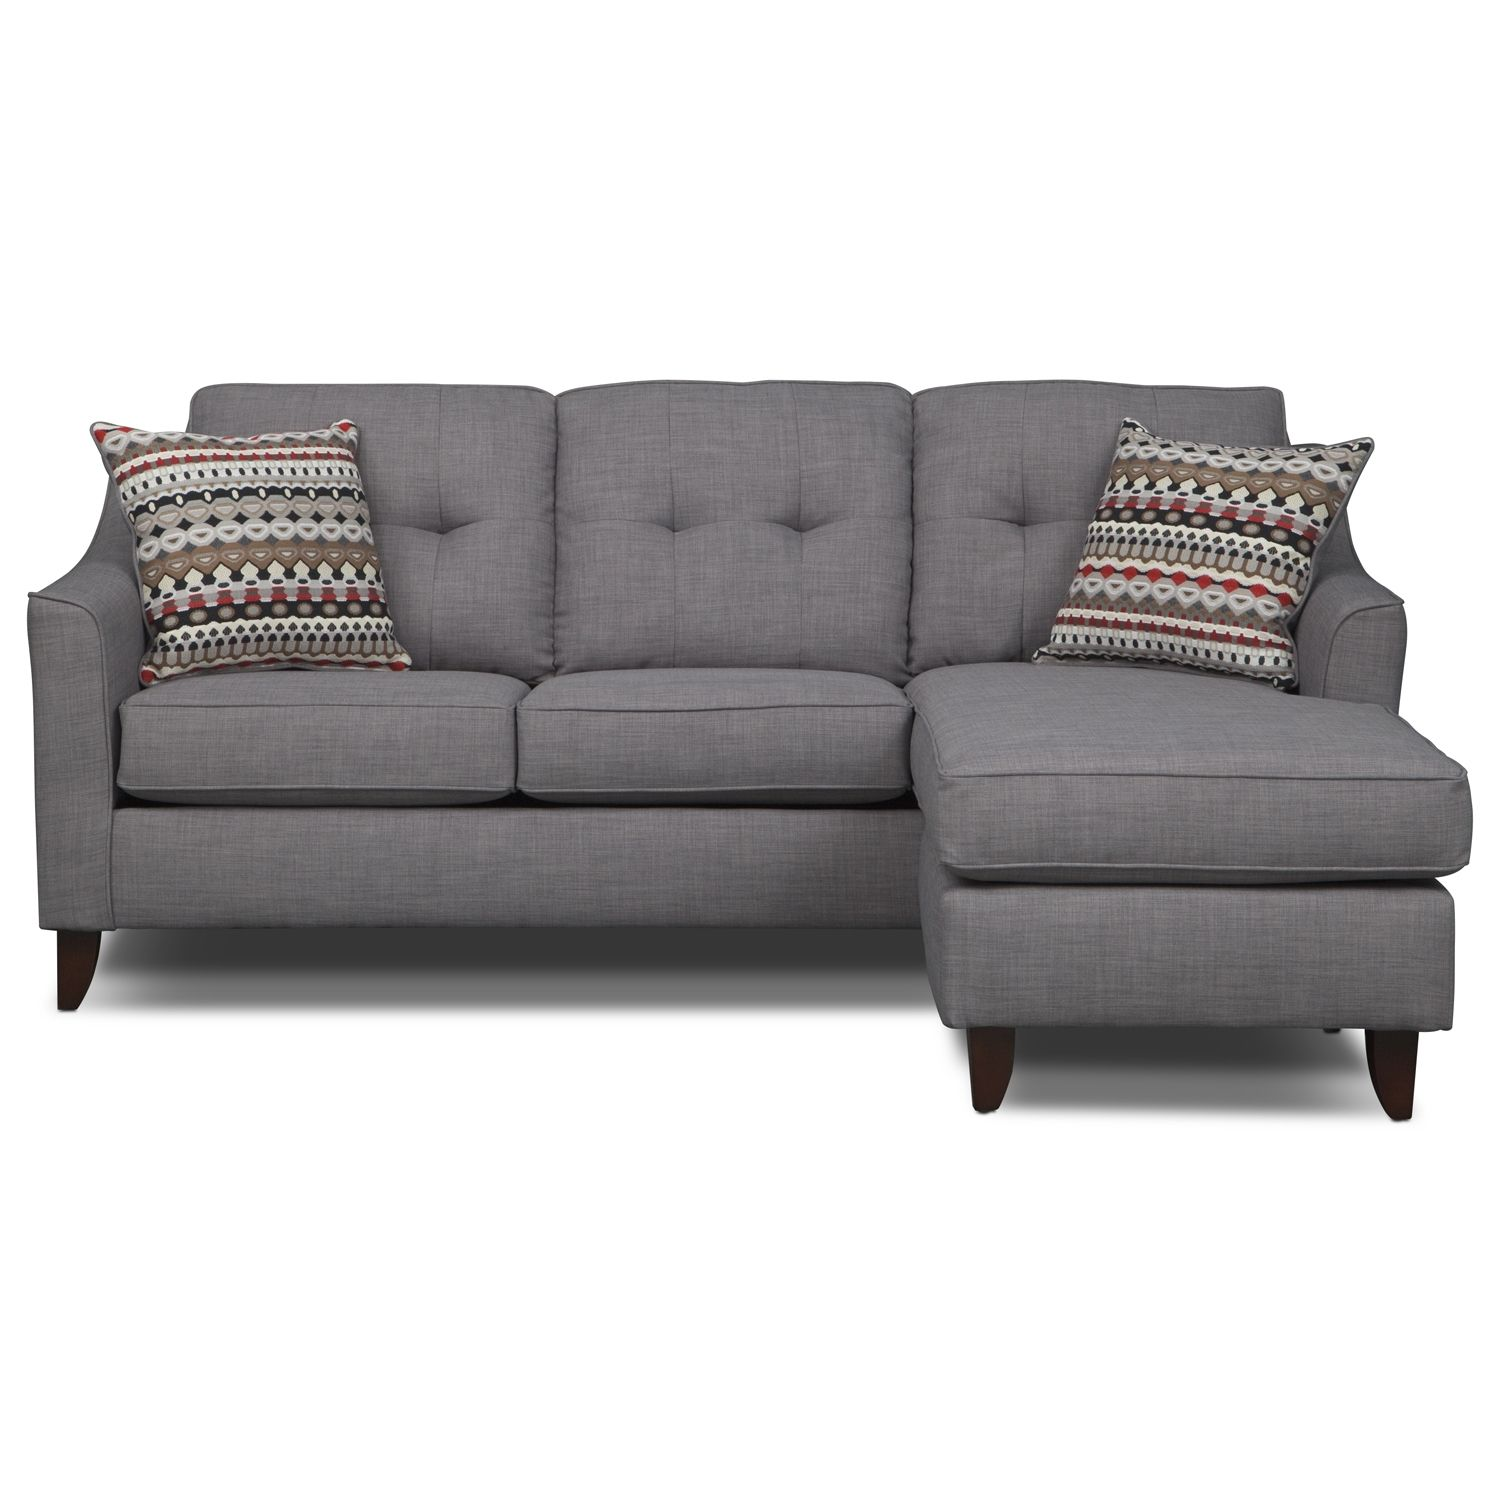 Value City Furniture Living Room Marco Chaise Sofa Value City Furniture Houseware Pinterest